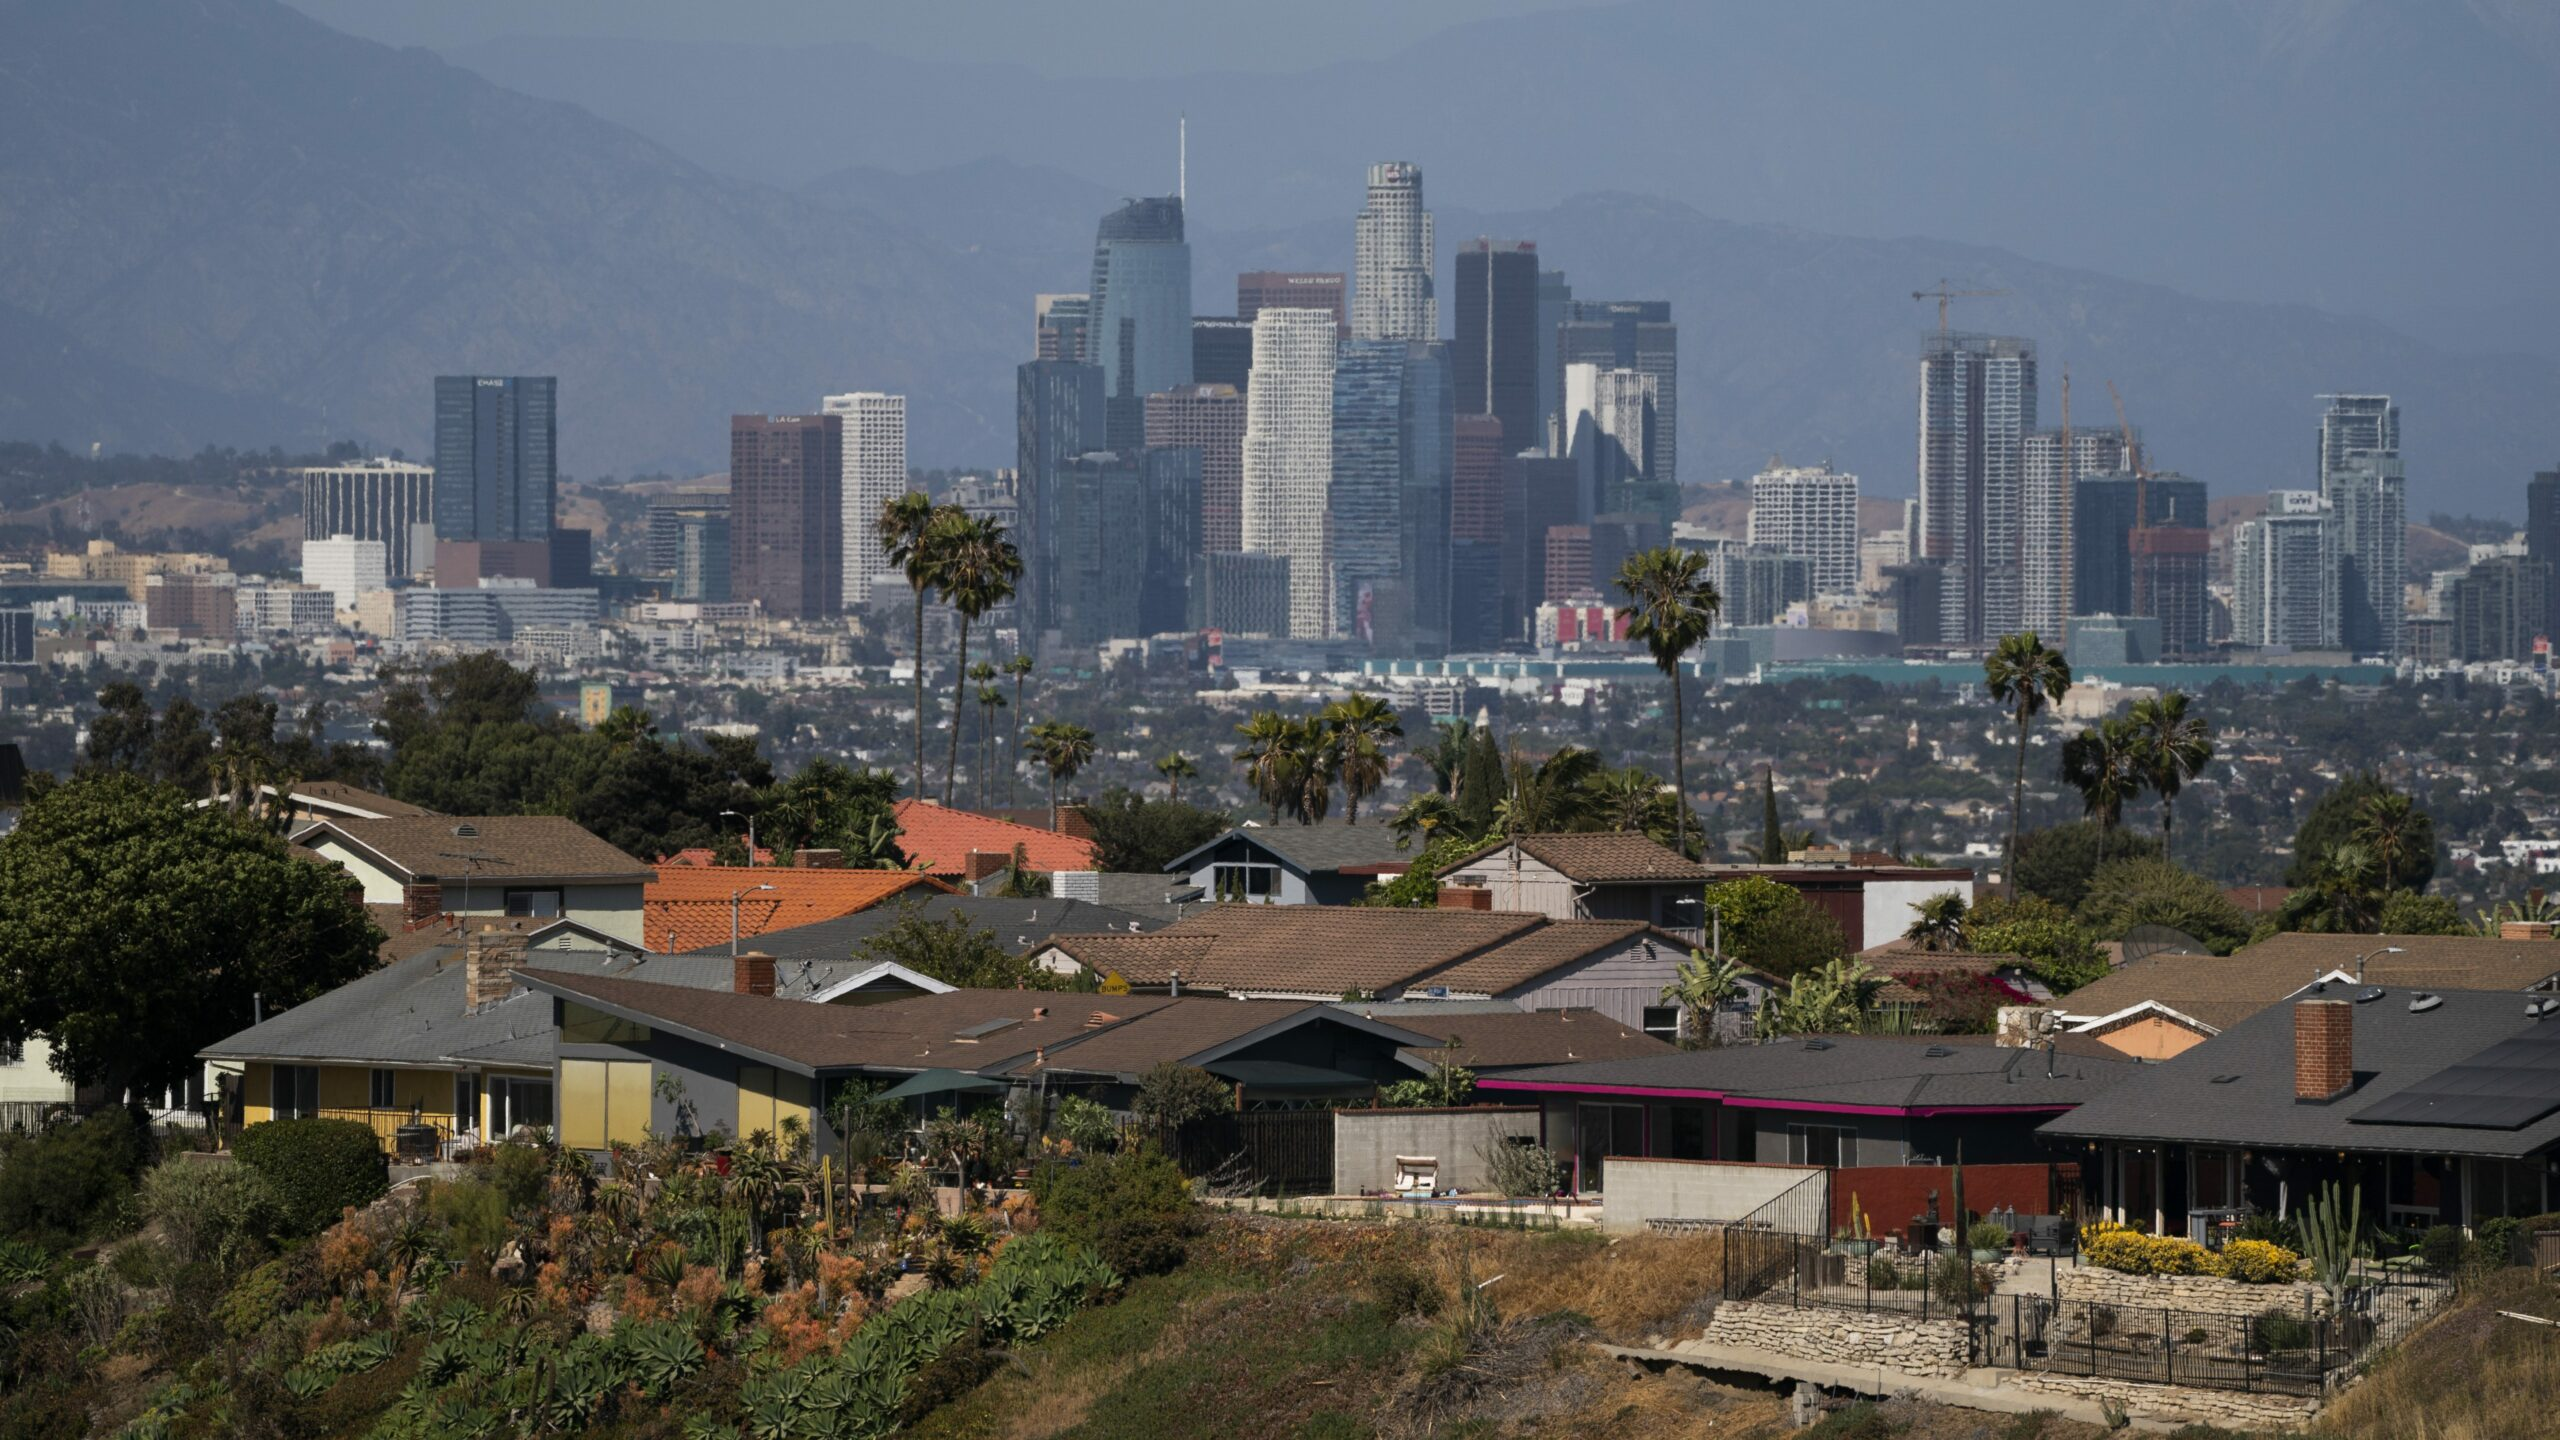 L.A. County Public Health Covid-19 Report: 28 New Deaths, 1,195 New Positive Cases